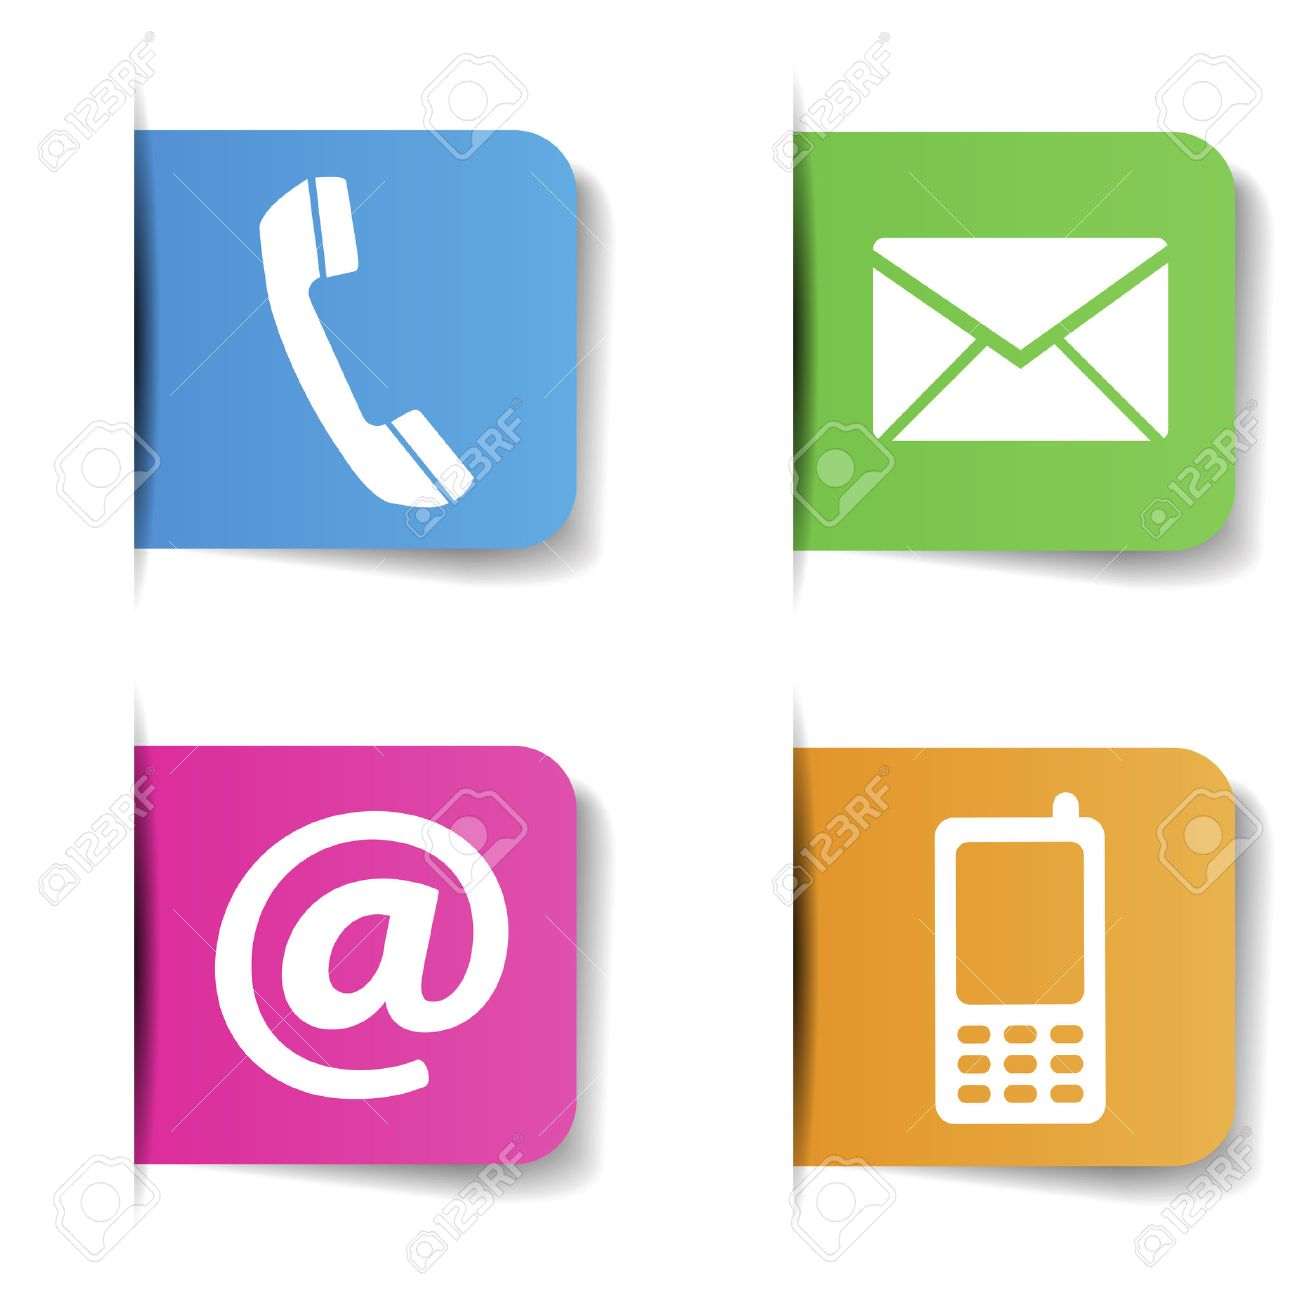 Contact us web and internet colorful icons and e mail design contact us web and internet colorful icons and e mail design symbols on paper with biocorpaavc